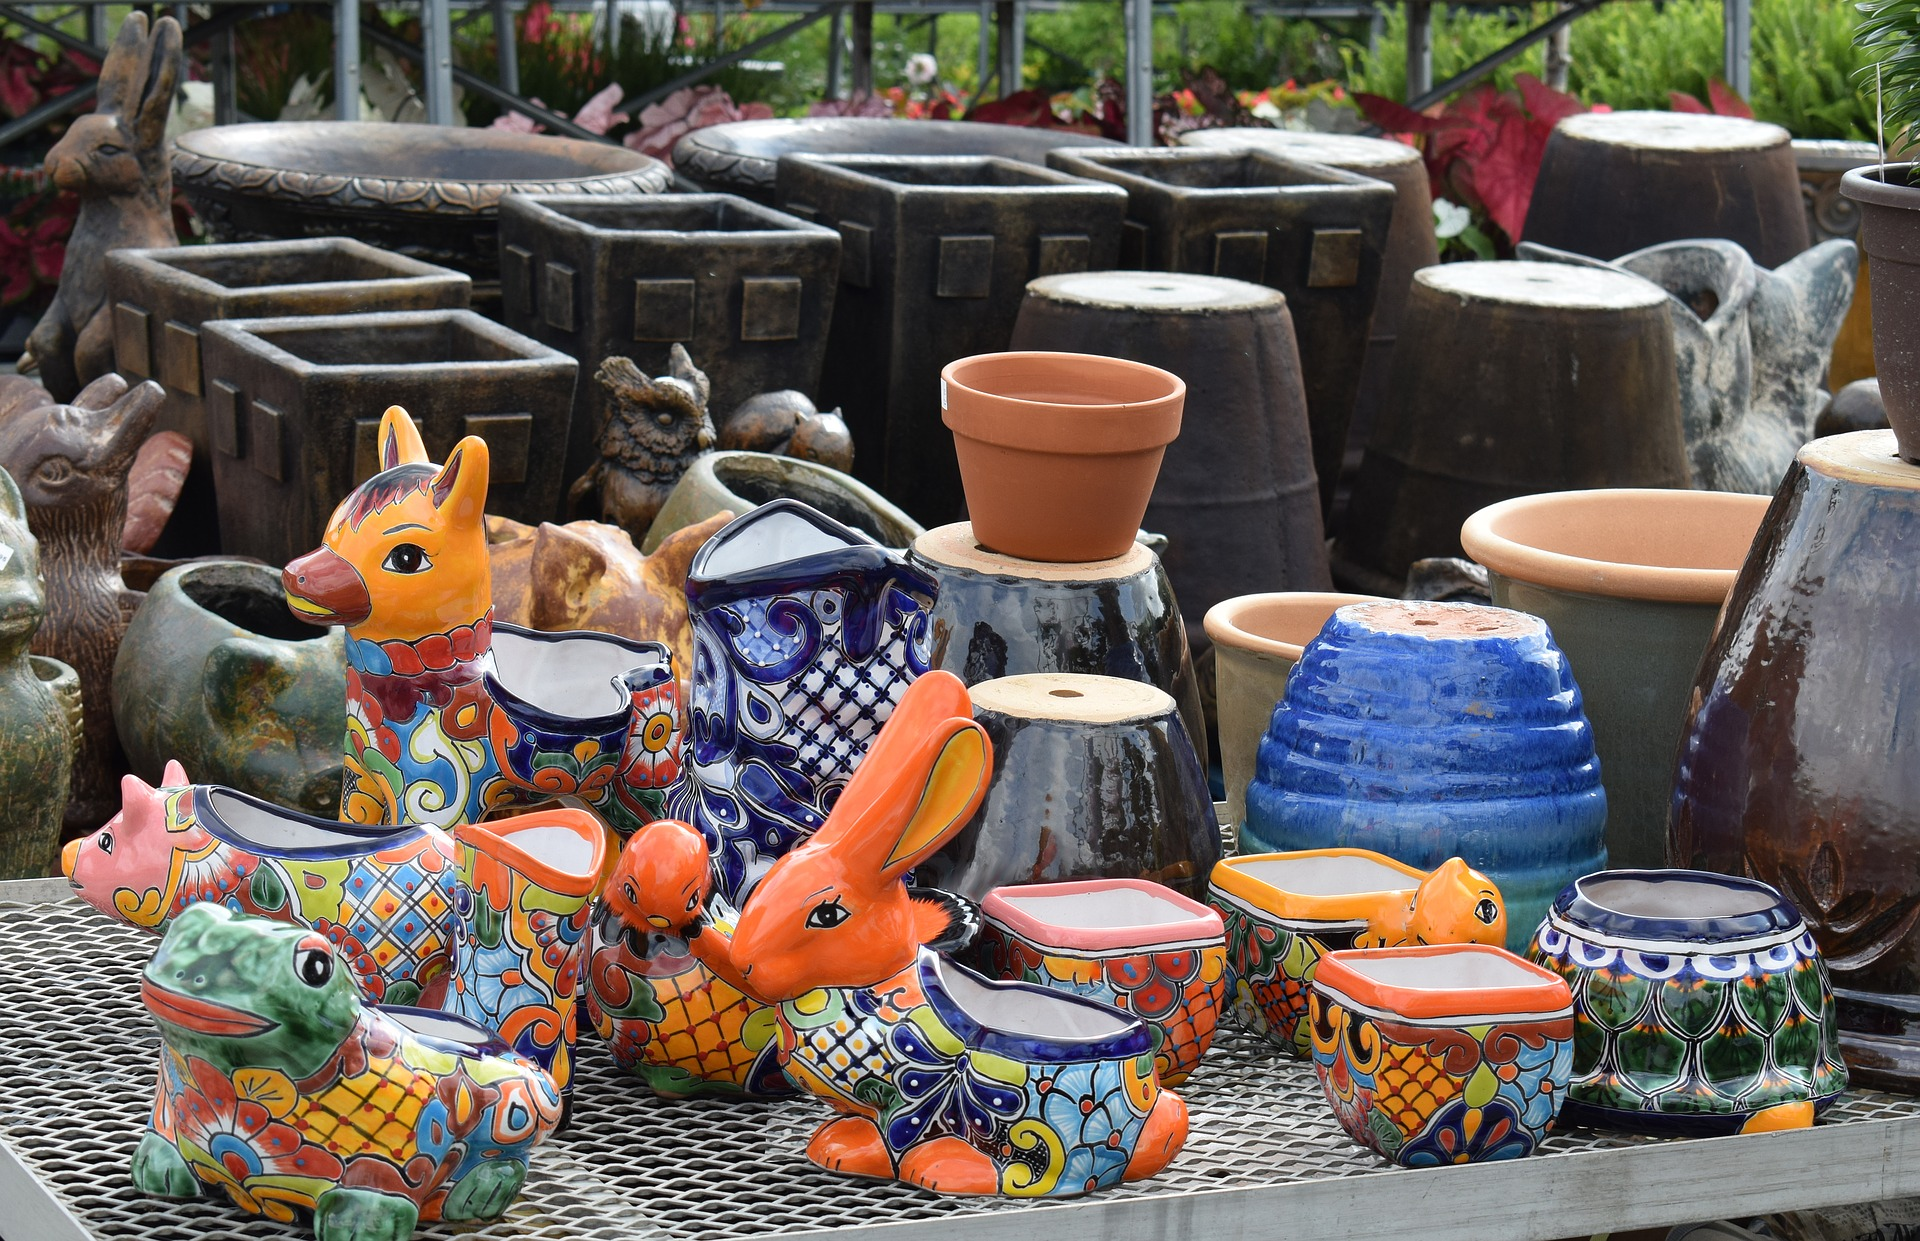 30 Decorative Pot Painting Ideas to Brighten Up Your Garden